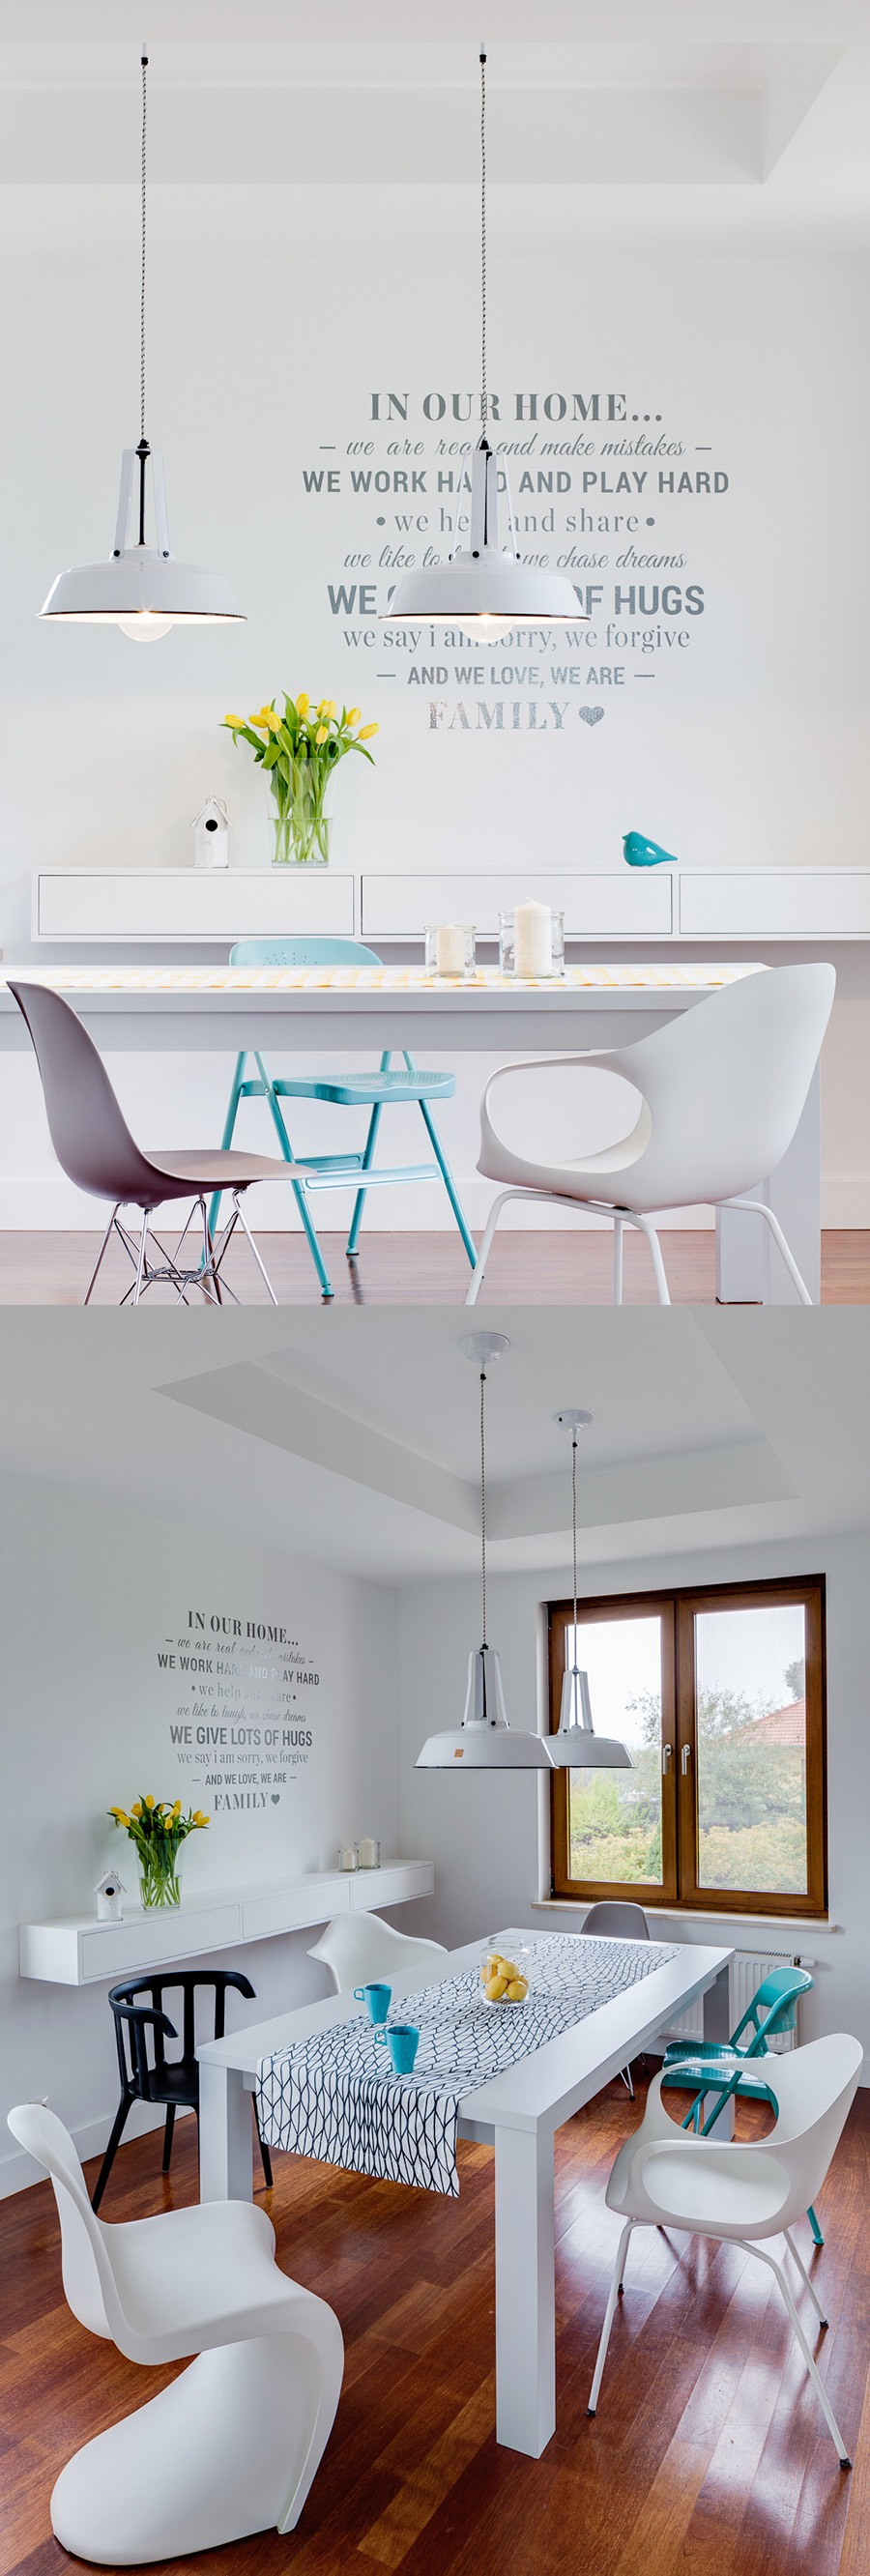 Eclectic Dining Chairs - Take a bite out of 24 modern dining rooms